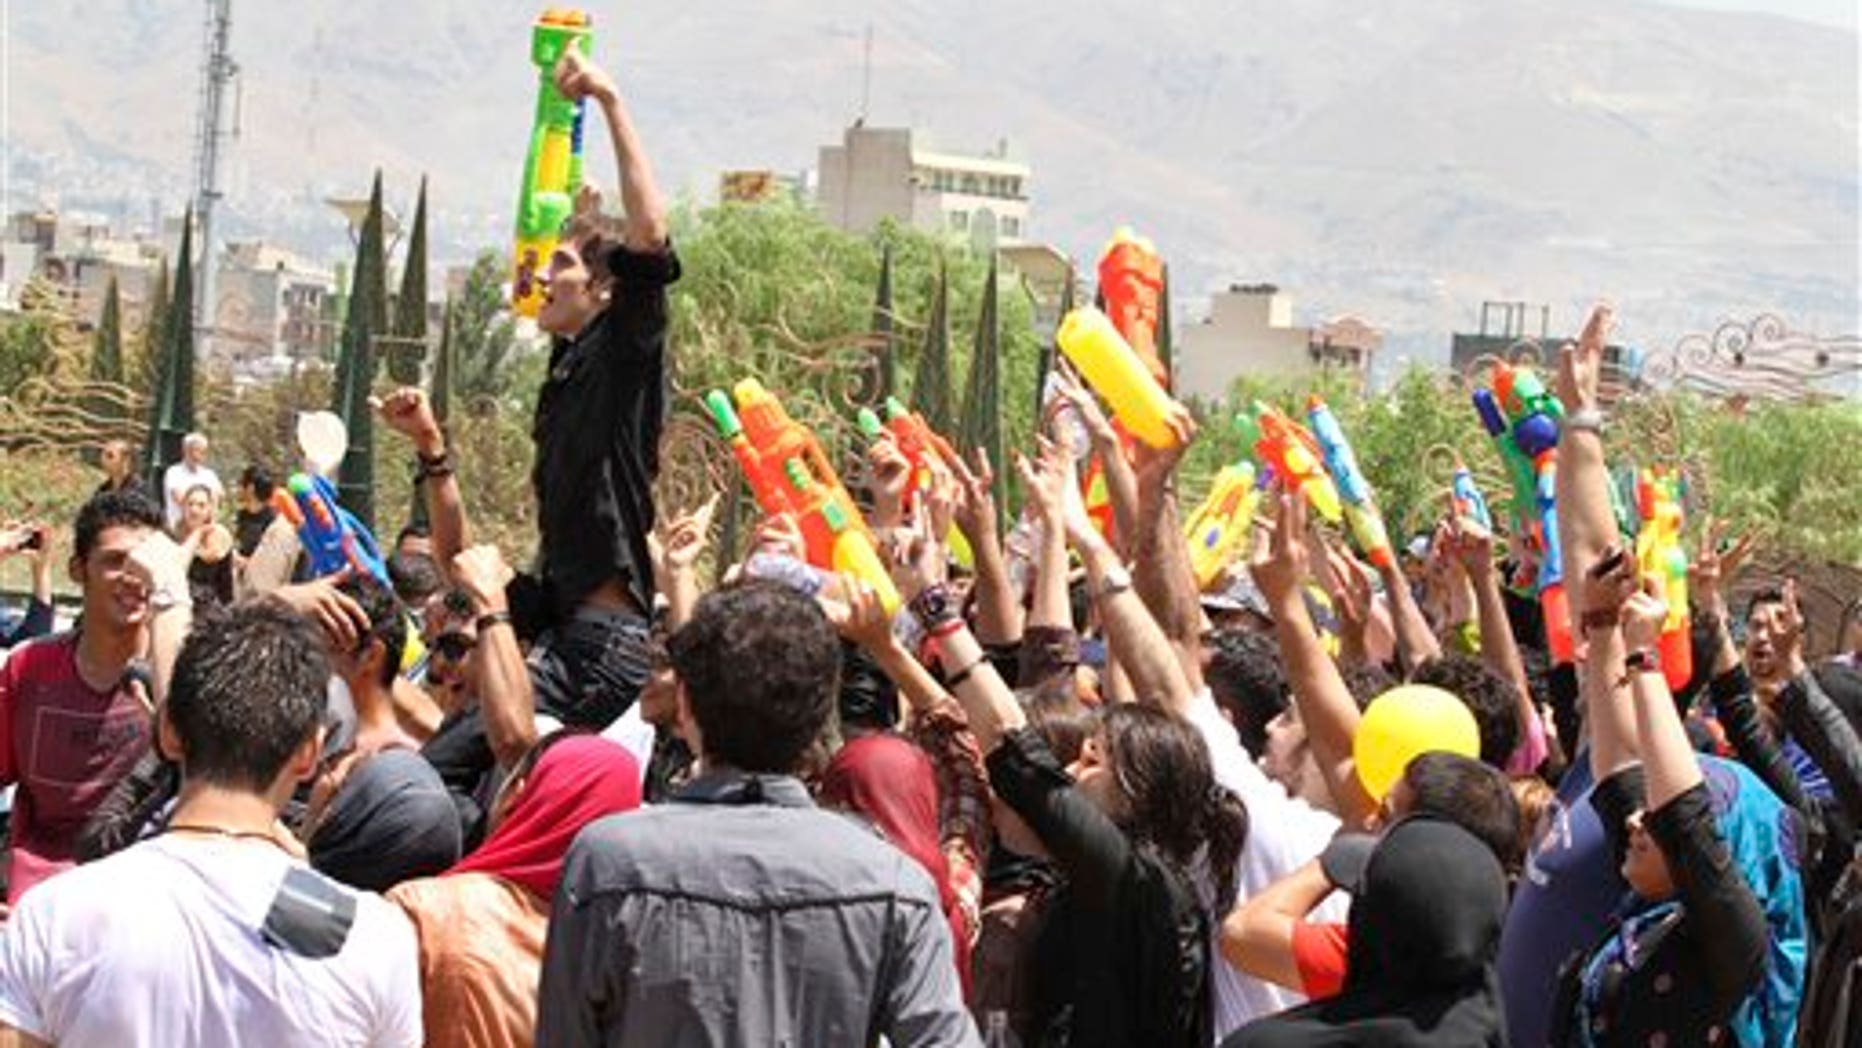 In this picture taken on Friday, July 29, Iranian youths celebrate with their water guns, during their water fights at the Water and Fire Park in northern Tehran, Iran. Iran is trying to put down a new wave of civil disobedience - flash mobs of young people who break into boisterous fights with water guns in public parks.